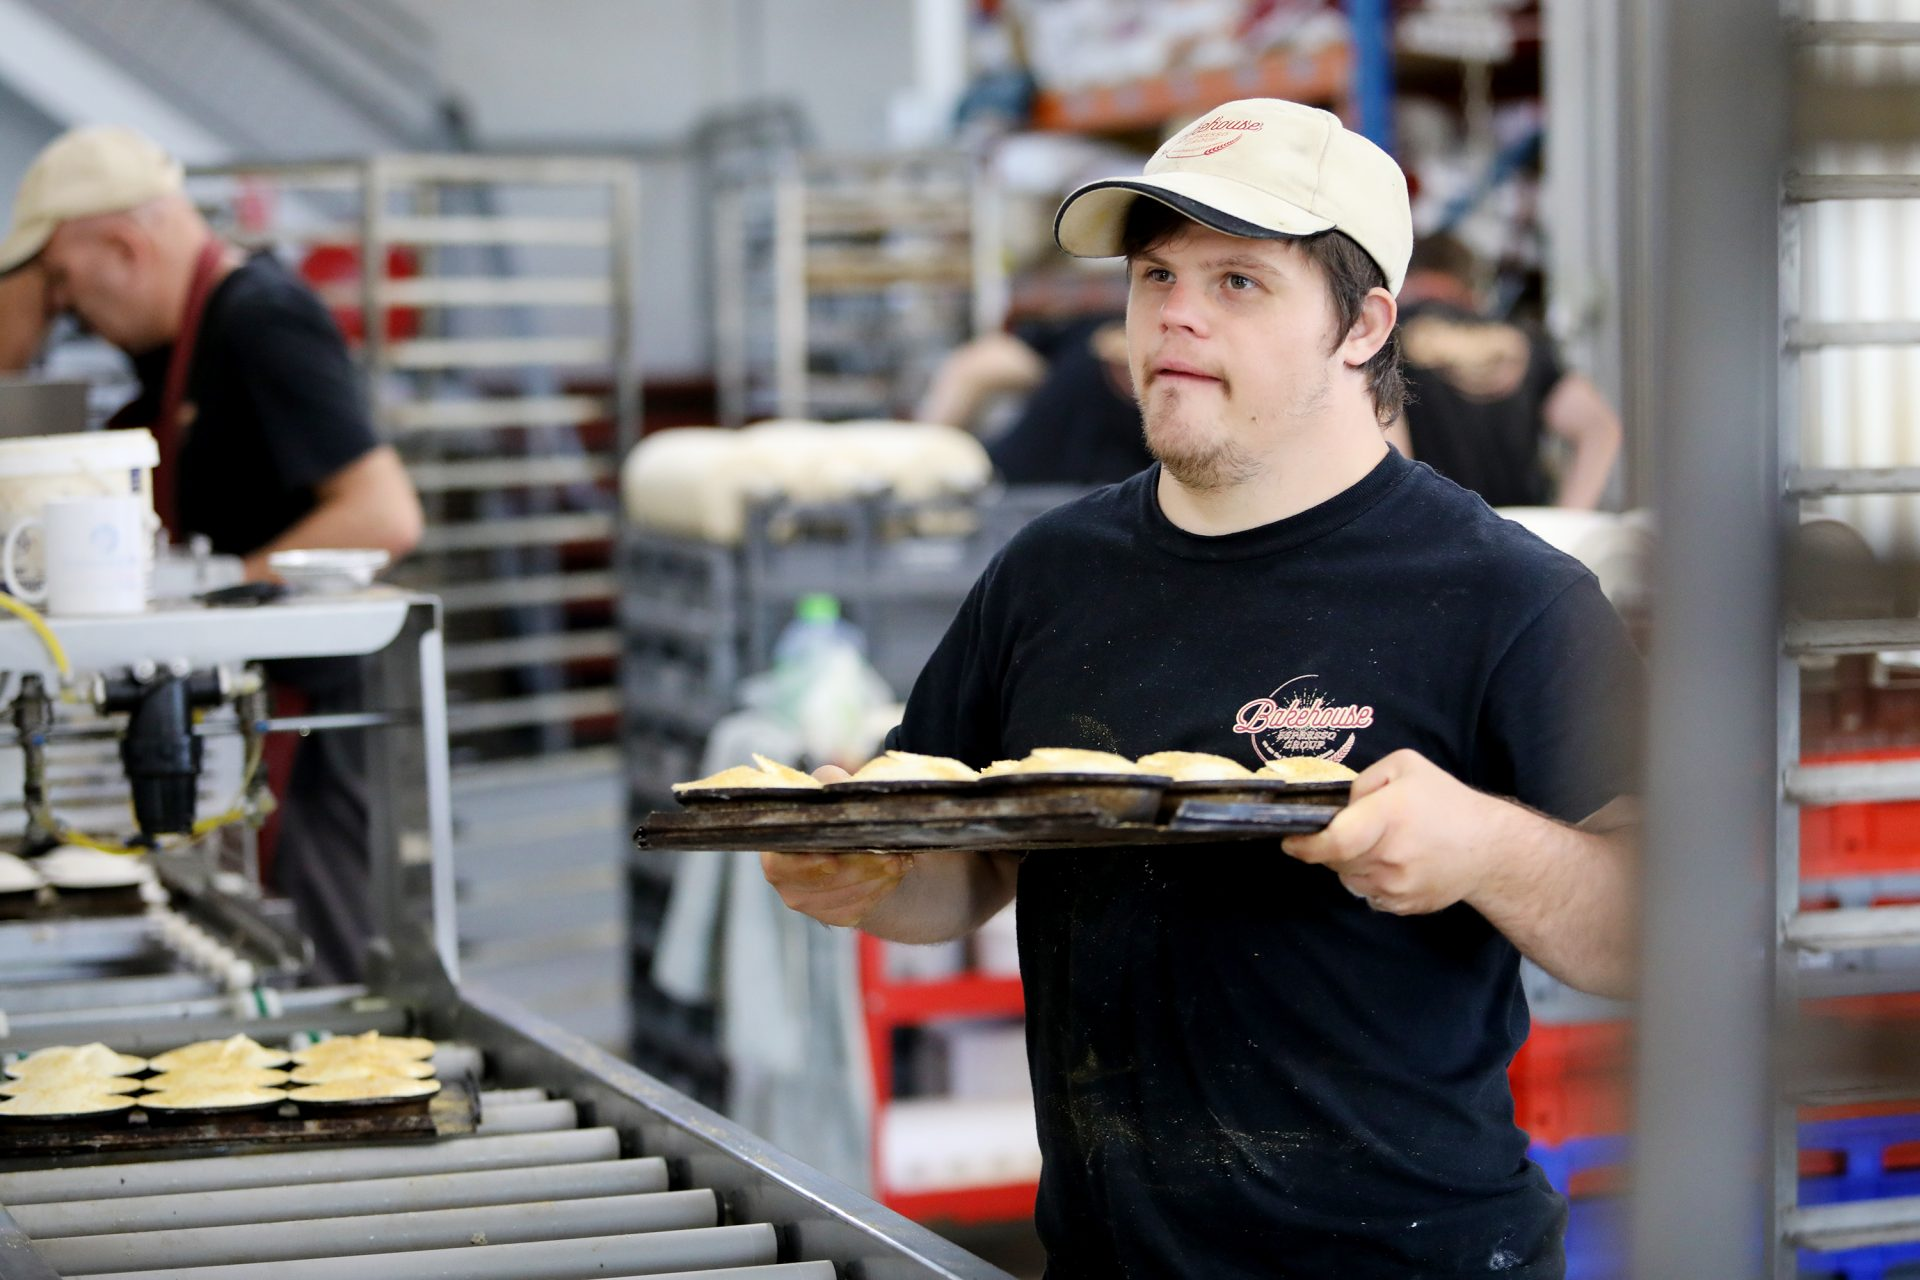 A man wearing a cap is moving a tray of pies in a bakehouse.